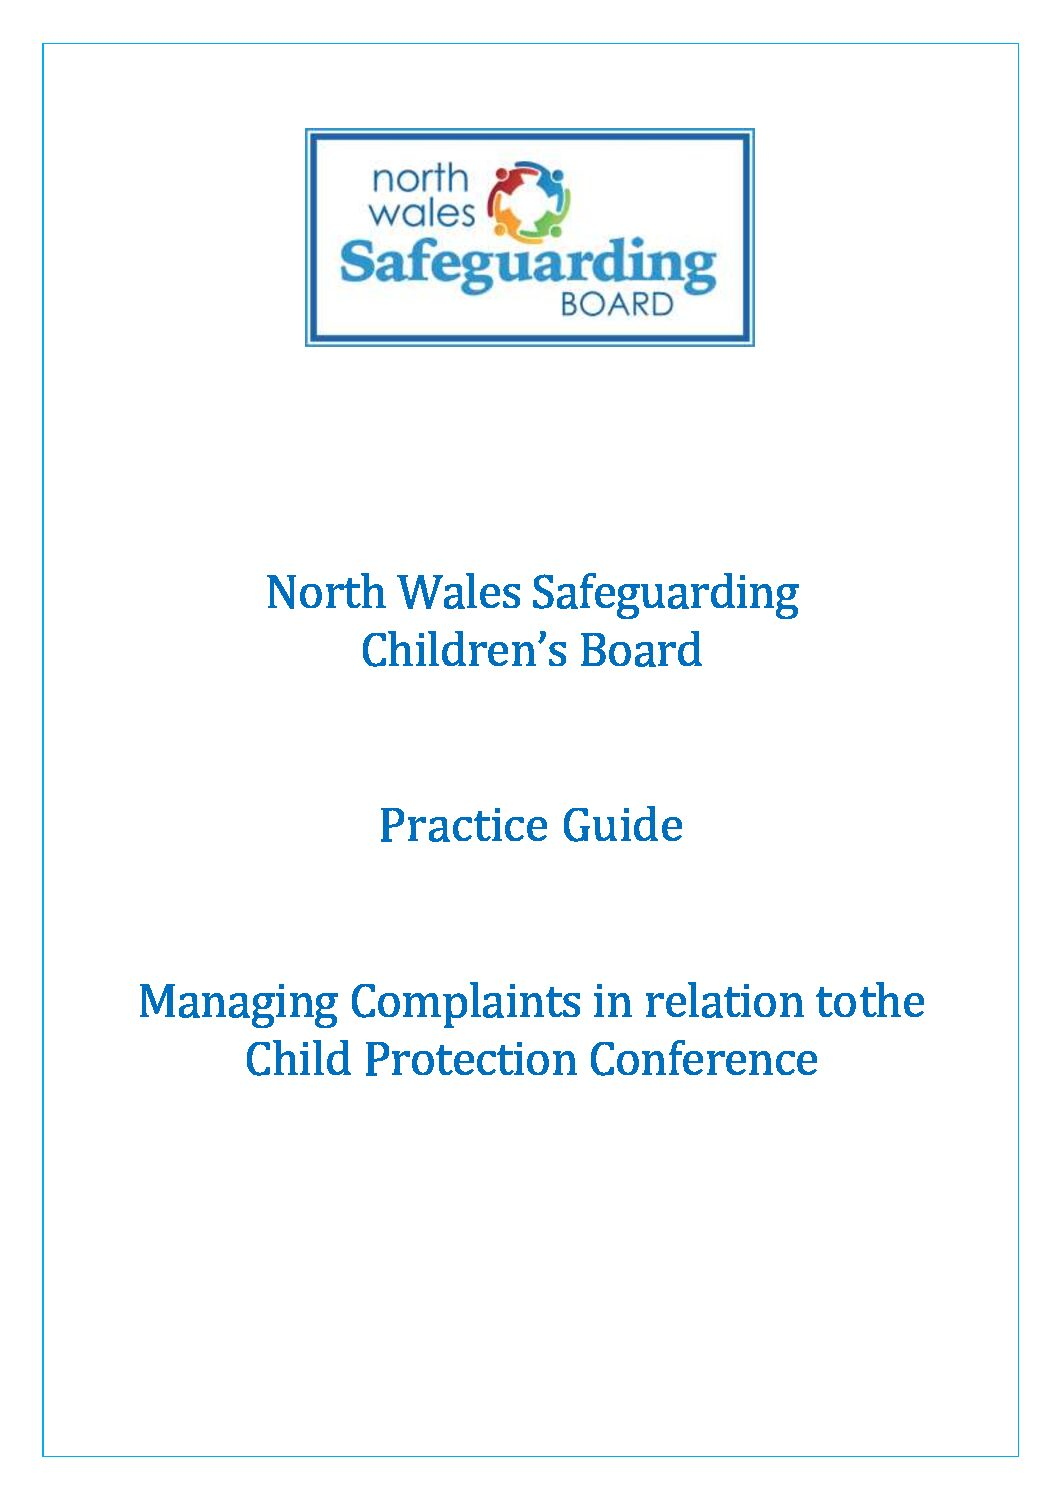 NWSCB Practice Guide – Managing Complaints in relation to the Child Protection Conference